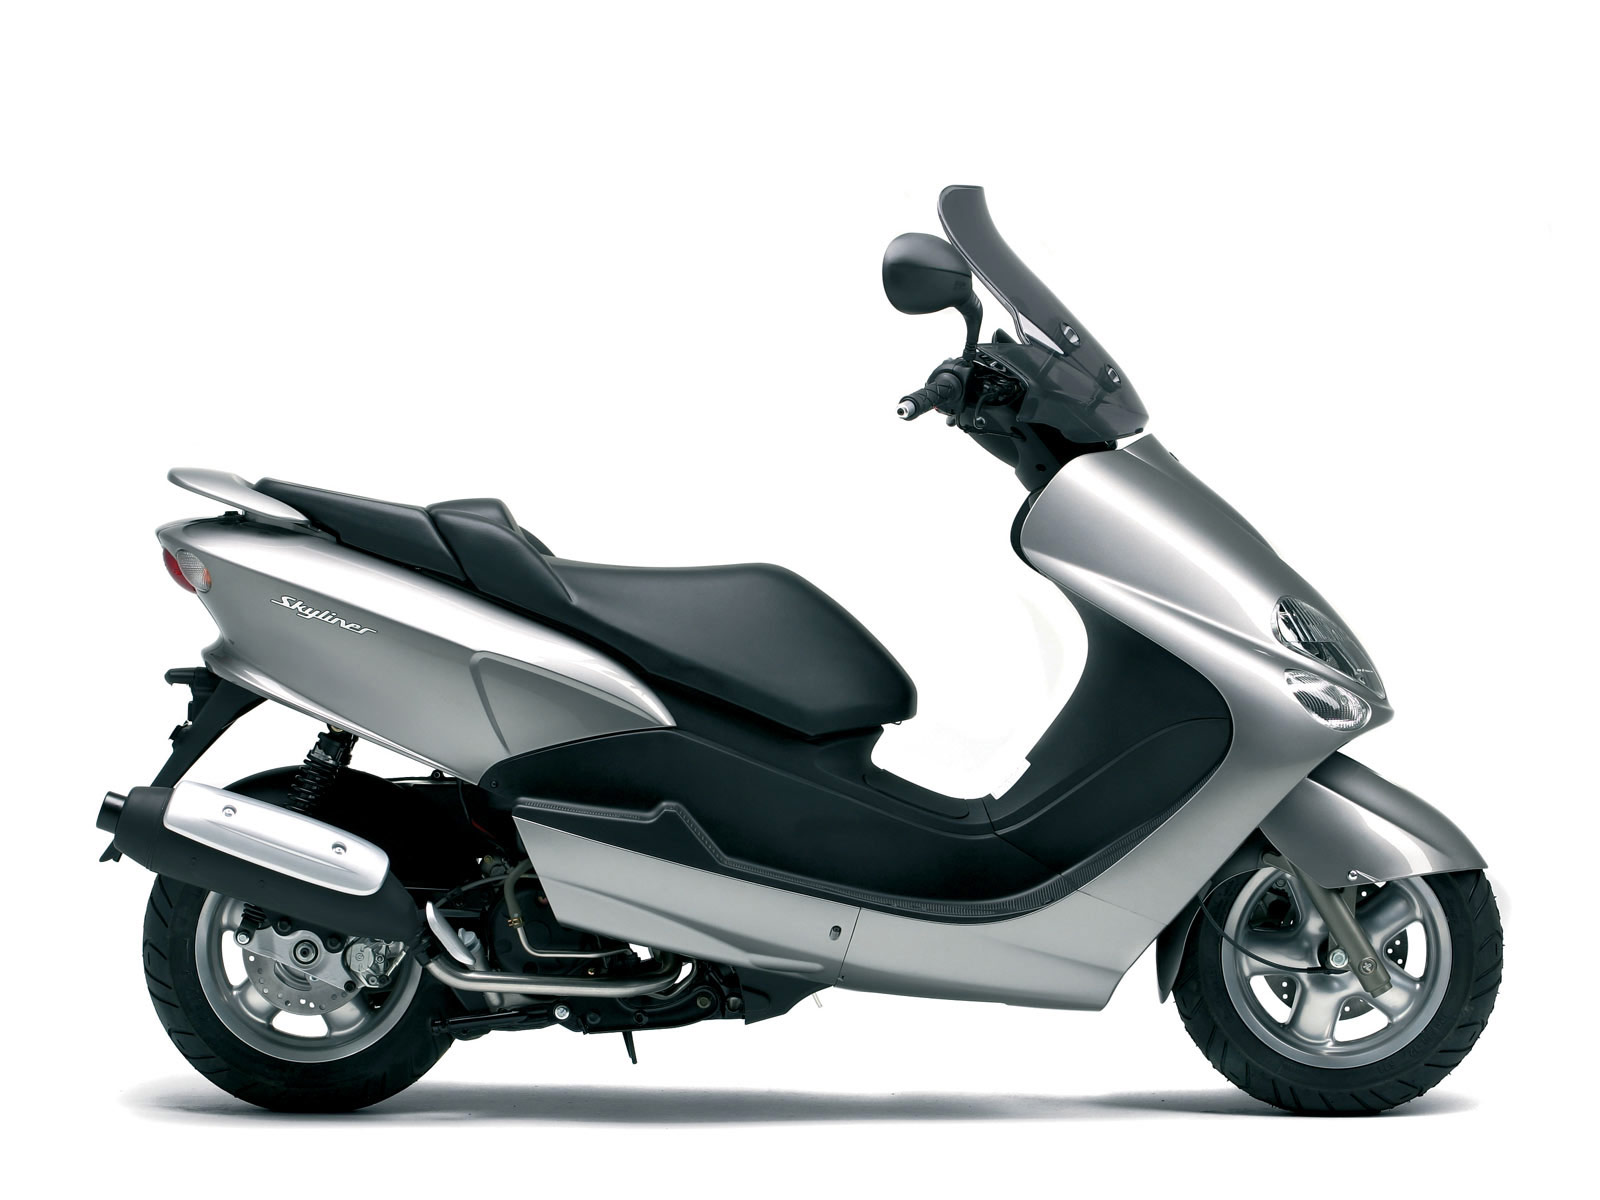 2005 mbk skyliner 125 accident lawyers info scooter pictures. Black Bedroom Furniture Sets. Home Design Ideas